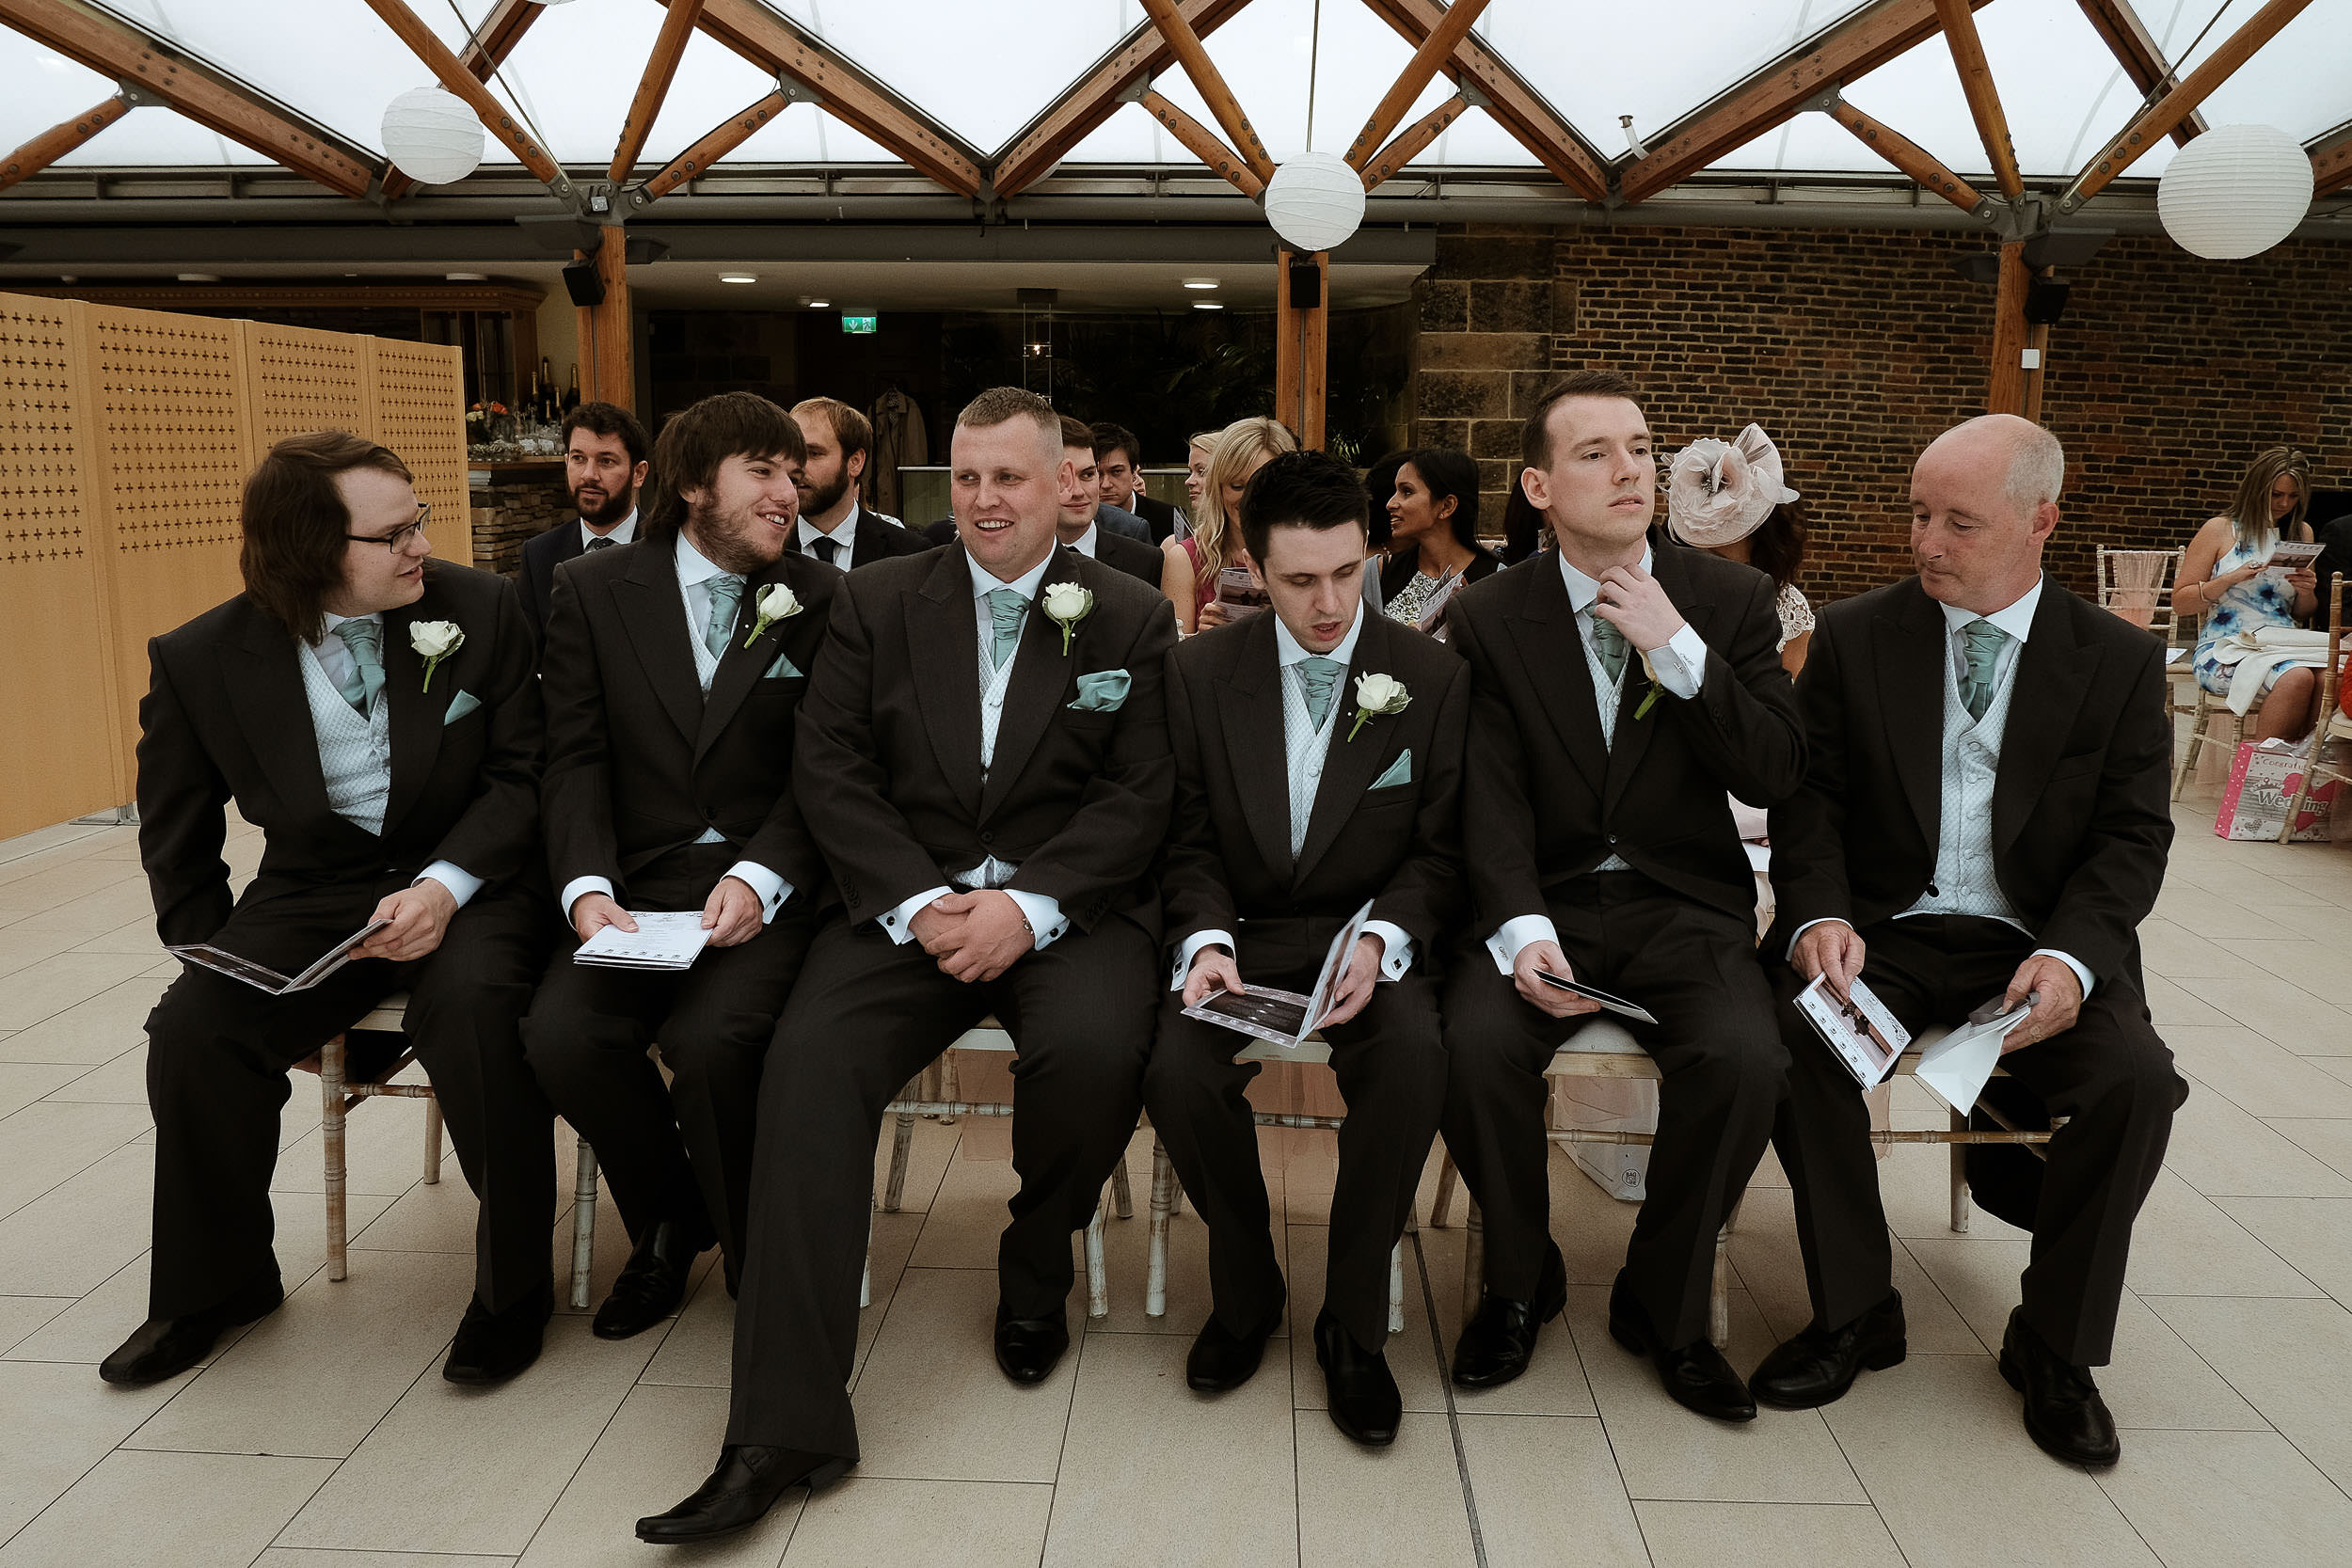 Groomsmen waiting for wedding ceremony to start at the Alnwick Garden